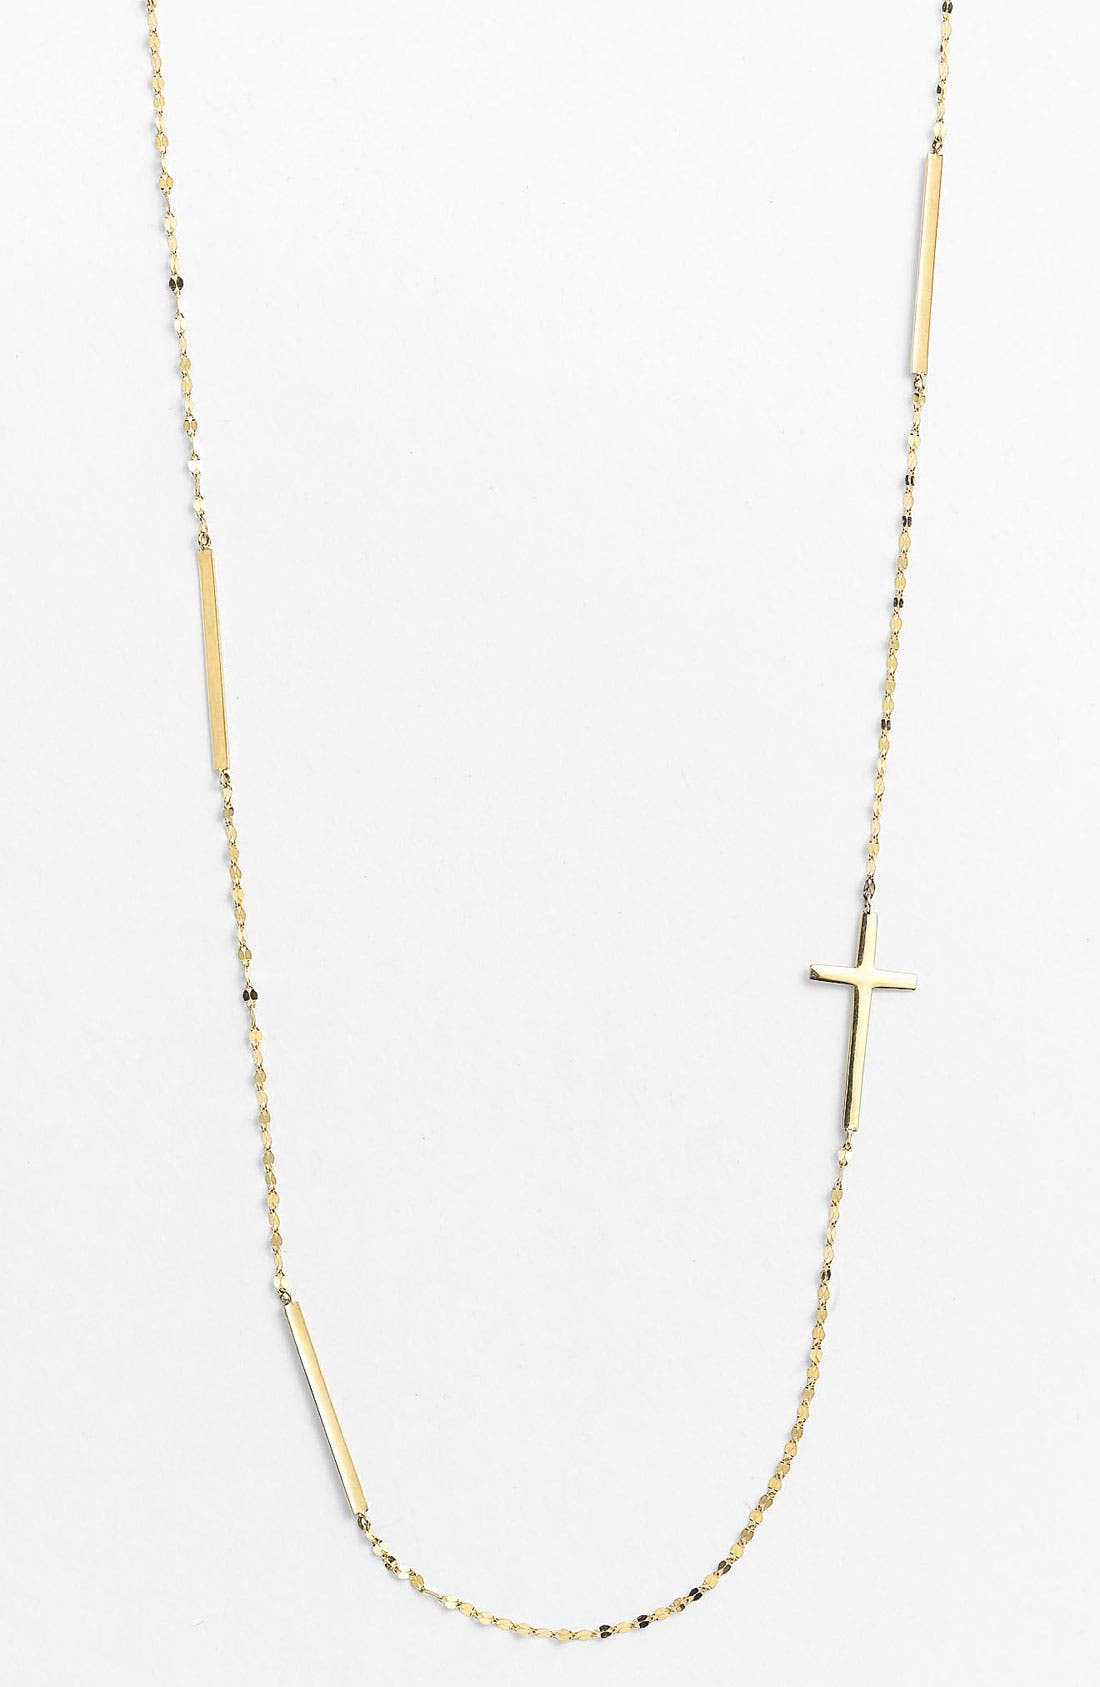 Alternate Image 1 Selected - Lana Jewelry Bar & Cross Station Necklace